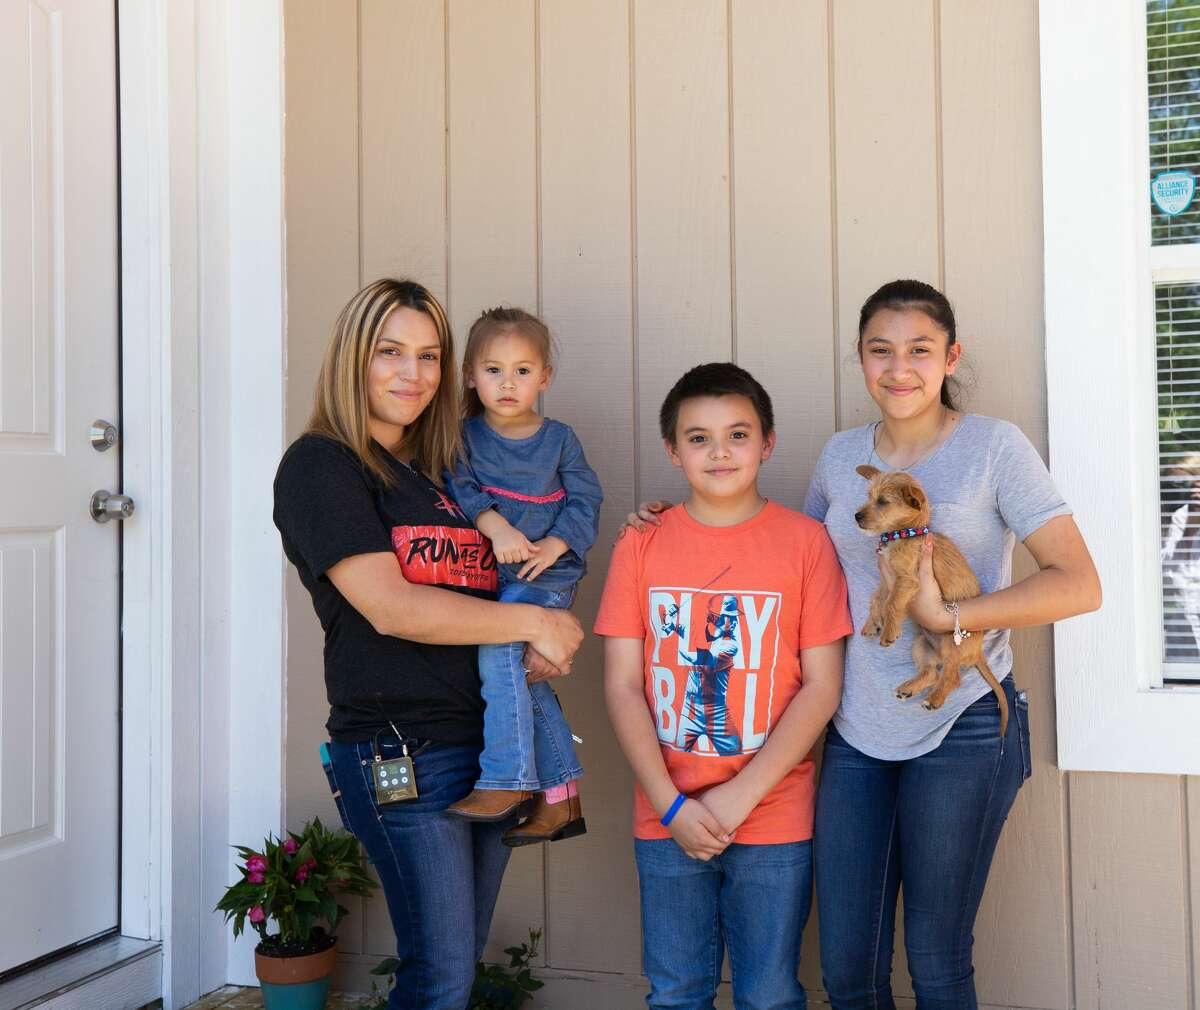 Margarita Garza and her three children, Jose Luis, Sophia and Noemi Tudon, pose outside their homein the Greenbrooks subdivision near Atascocita. The home was badly damaged by Hurricane Harvey flooding. Even though they had help getting the home livable again, Garza couldn't afford new furniture. The Houston Rockets, Rooms To Go and Marie Flanigan Interiors brought everything together for them.